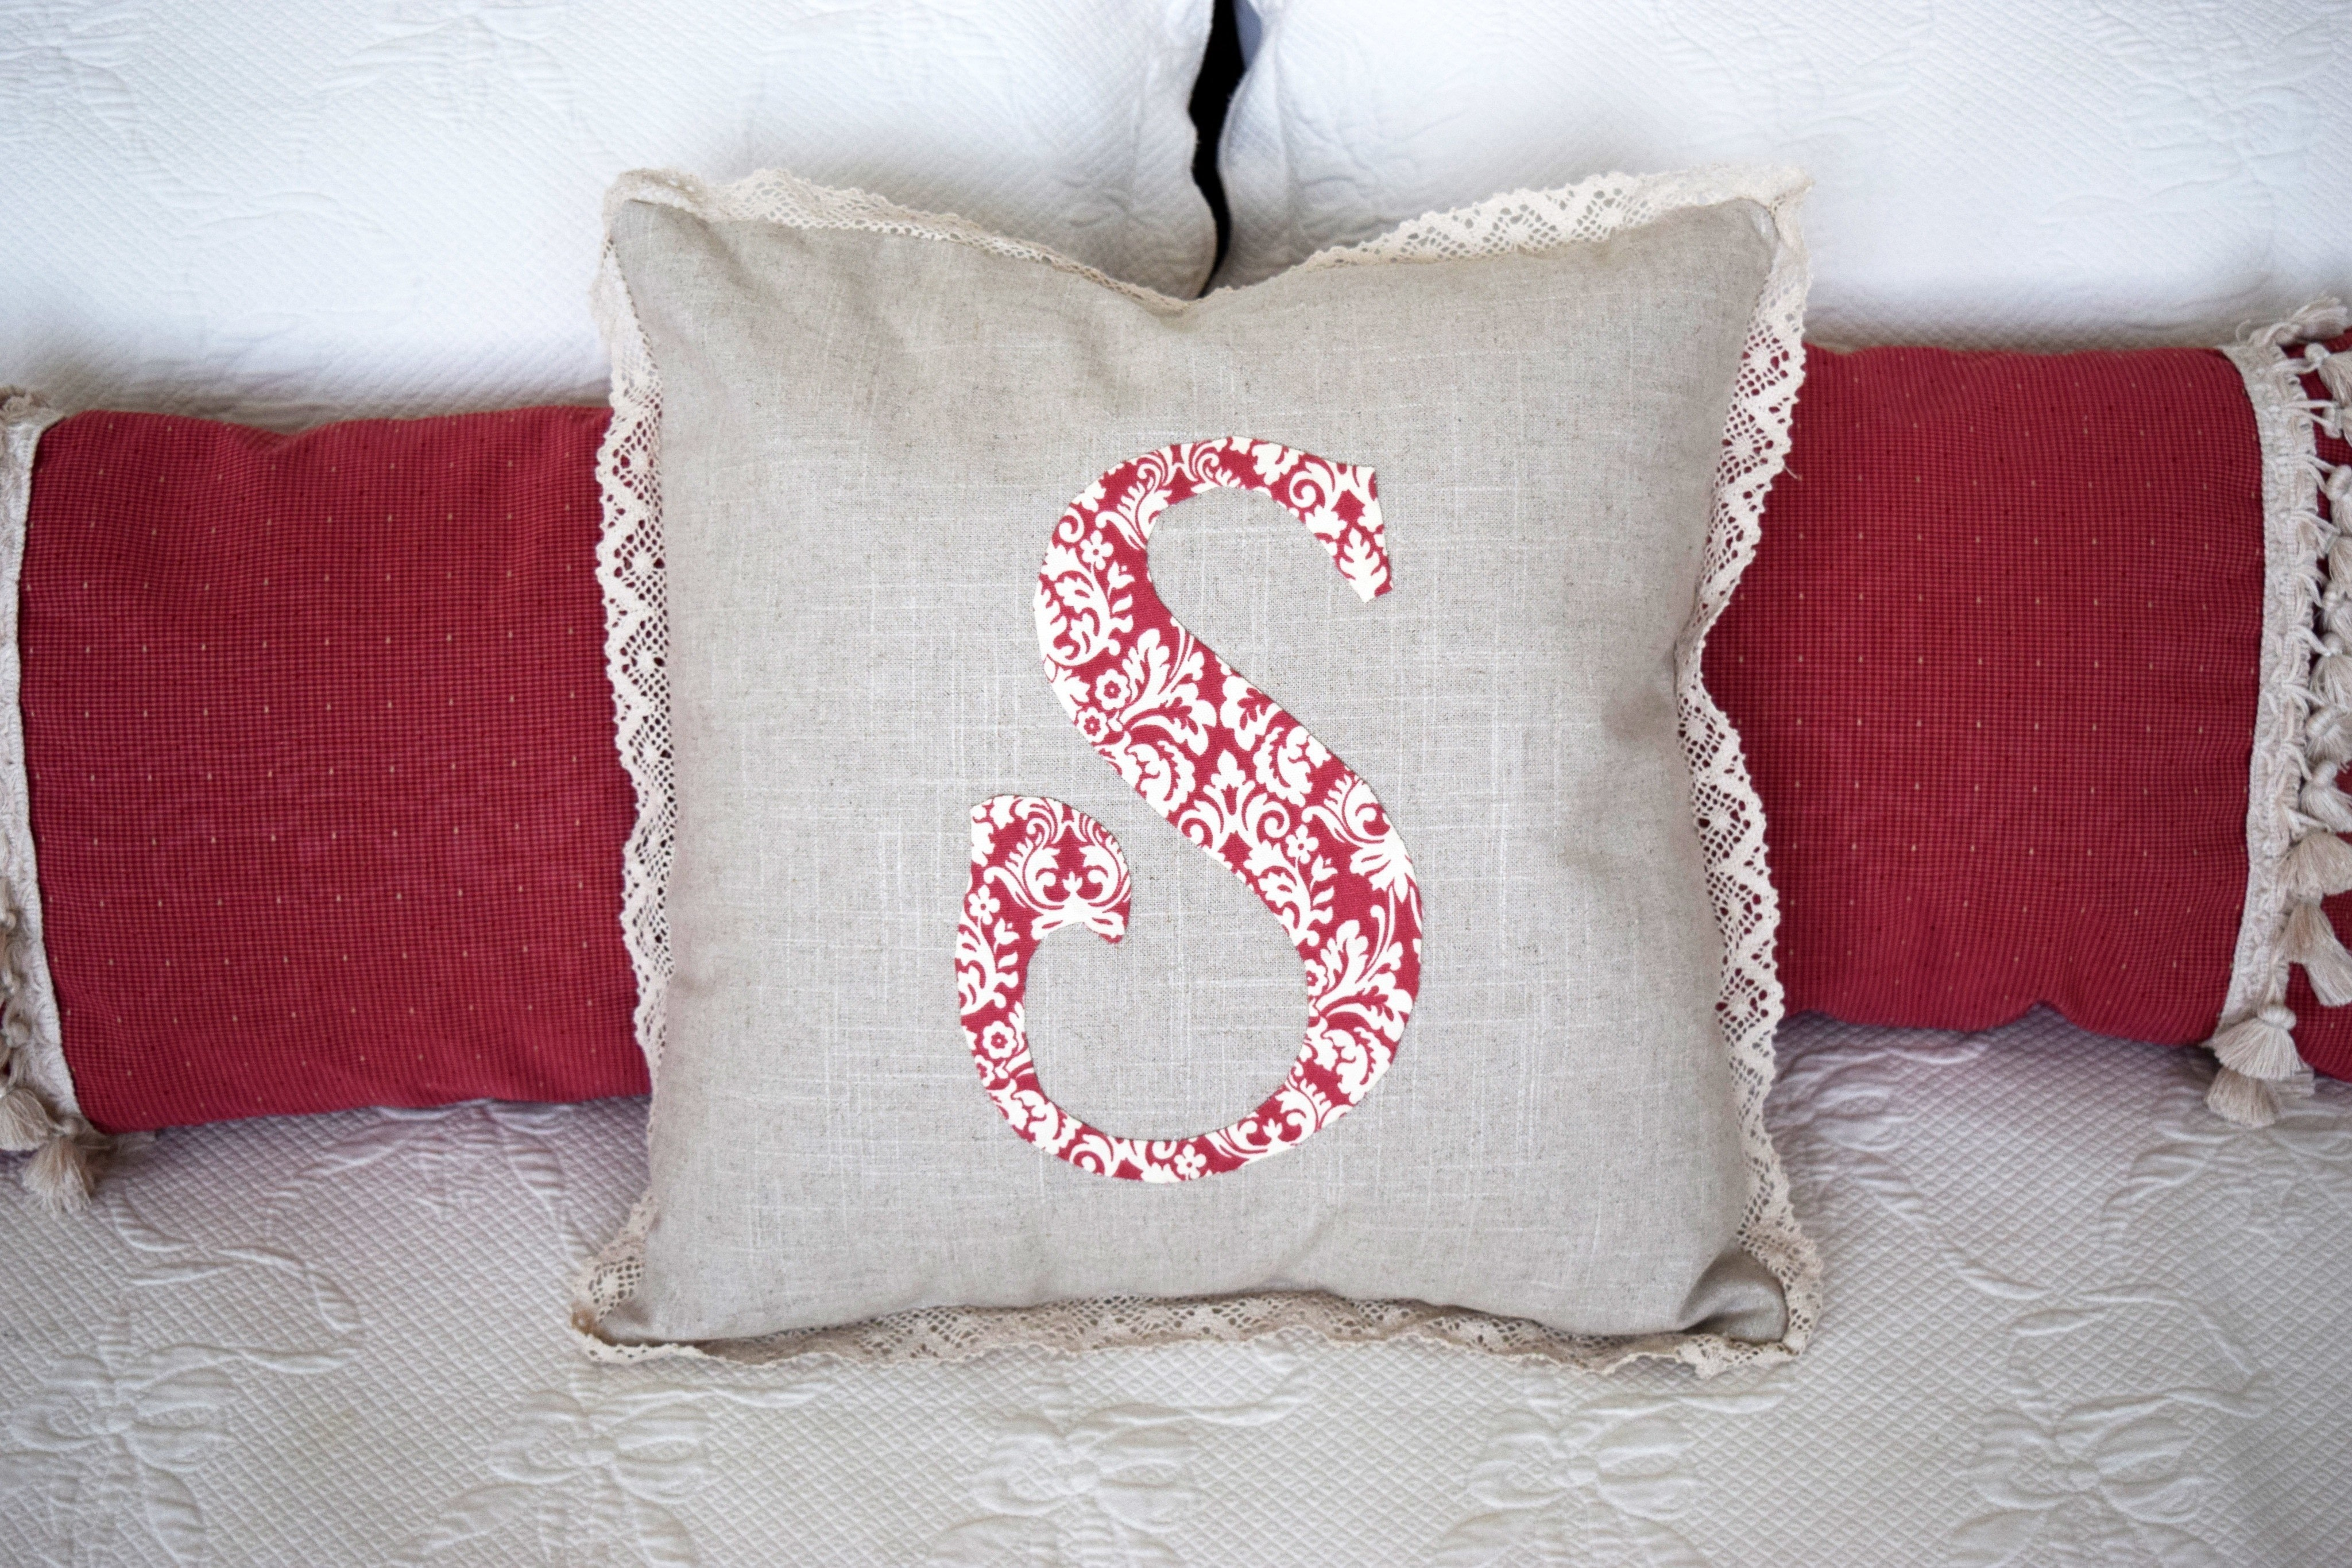 Appliqued Monogram Pillow 183 How To Sew An Applique Cushion